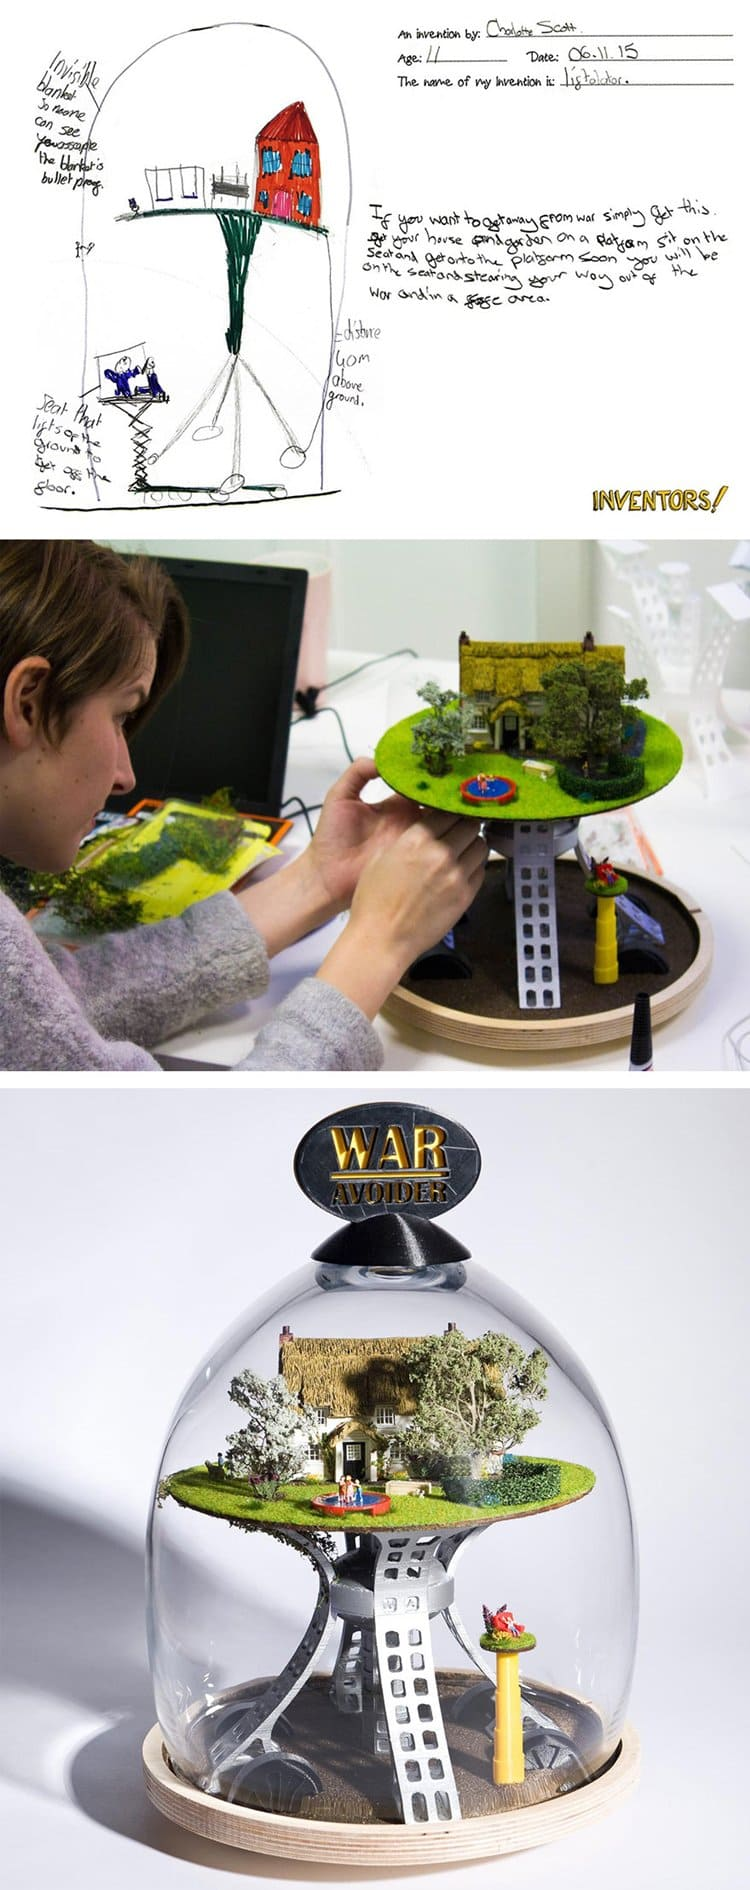 kids-inventions-turned-into-reality-lifolator